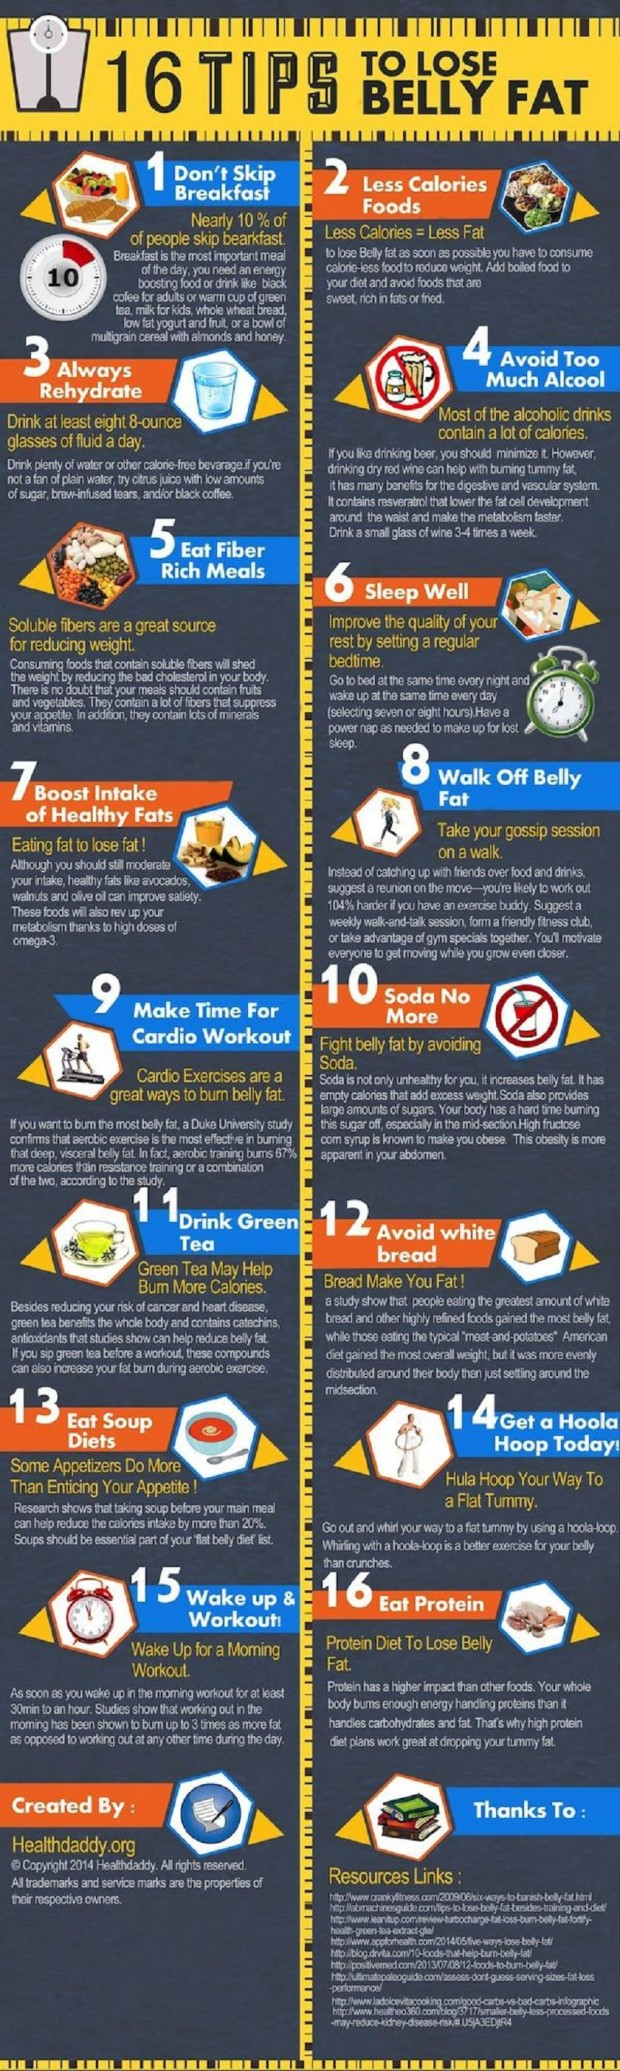 16 Useful Tips To Rid of Belly Fat Infographic